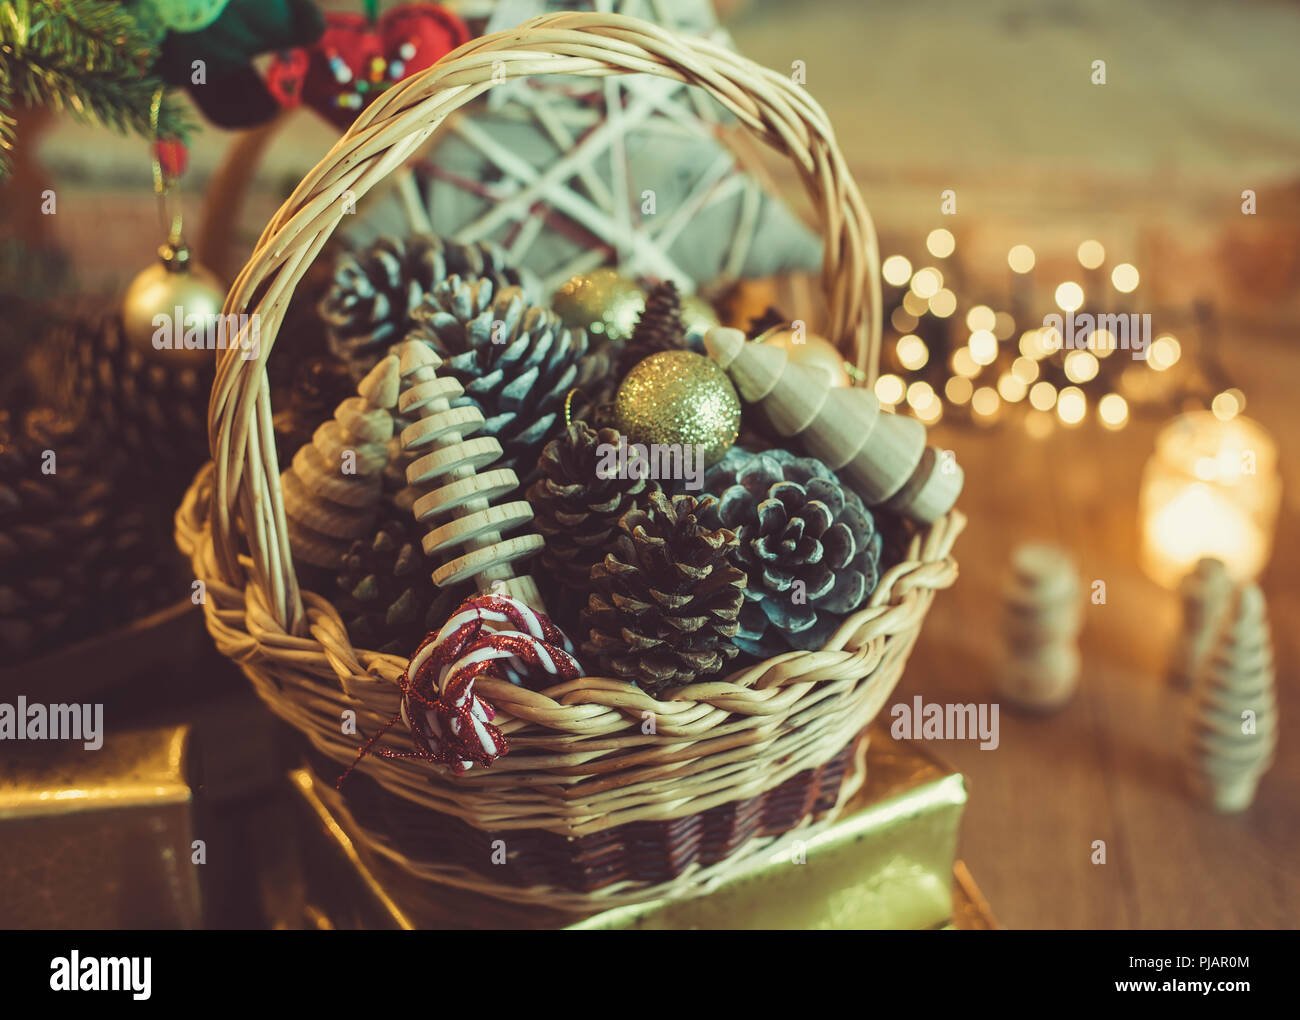 christmas decorations in the basket in front of fireplace with candles and baubles handmade wooden toys made on wood lathe felt ornaments baubles - Christmas Basket Decorations